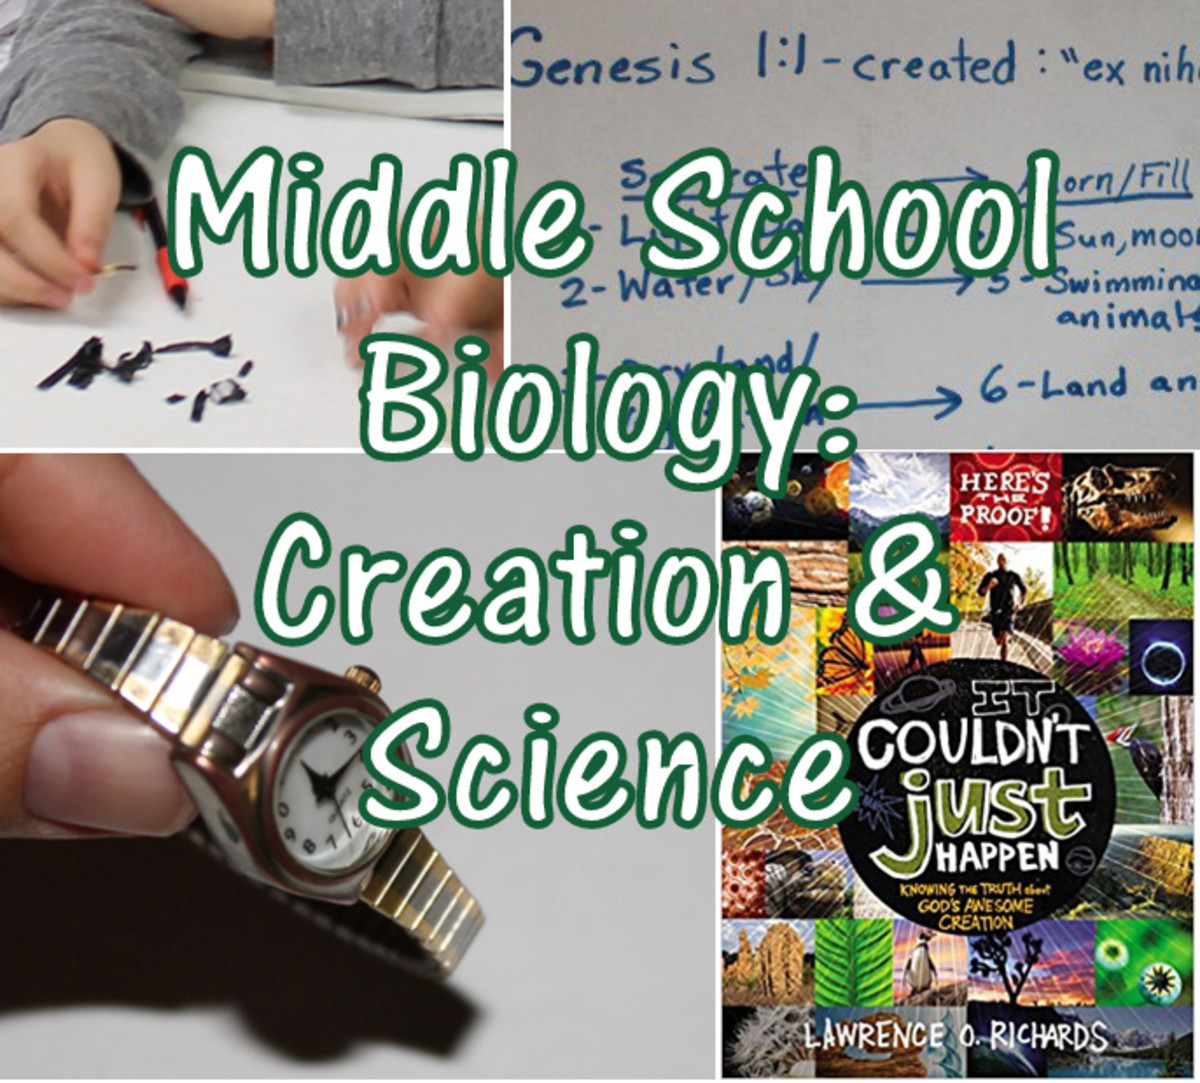 Middle School Biology Lesson on Creation and Science from a Young Earth Christian Perspective